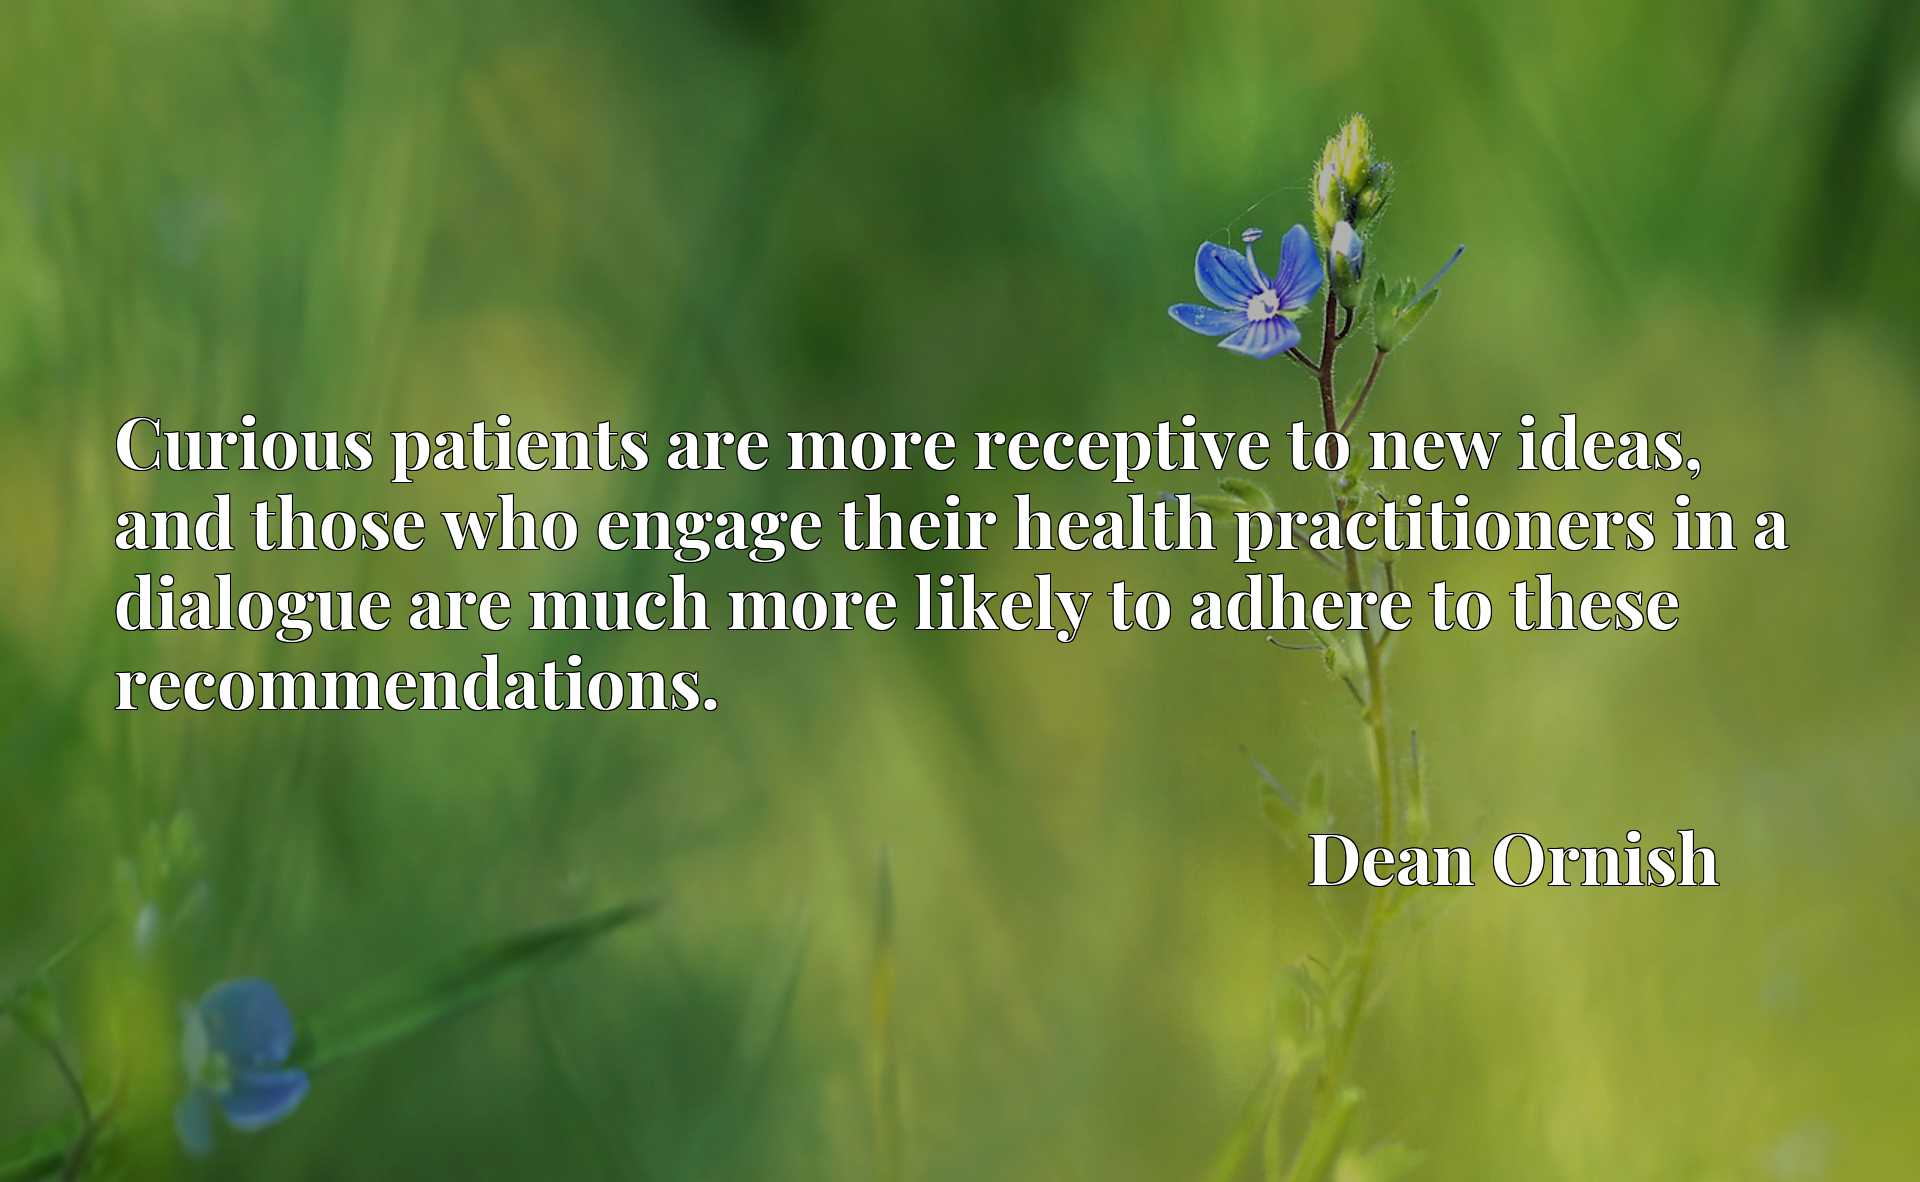 Curious patients are more receptive to new ideas, and those who engage their health practitioners in a dialogue are much more likely to adhere to these recommendations.